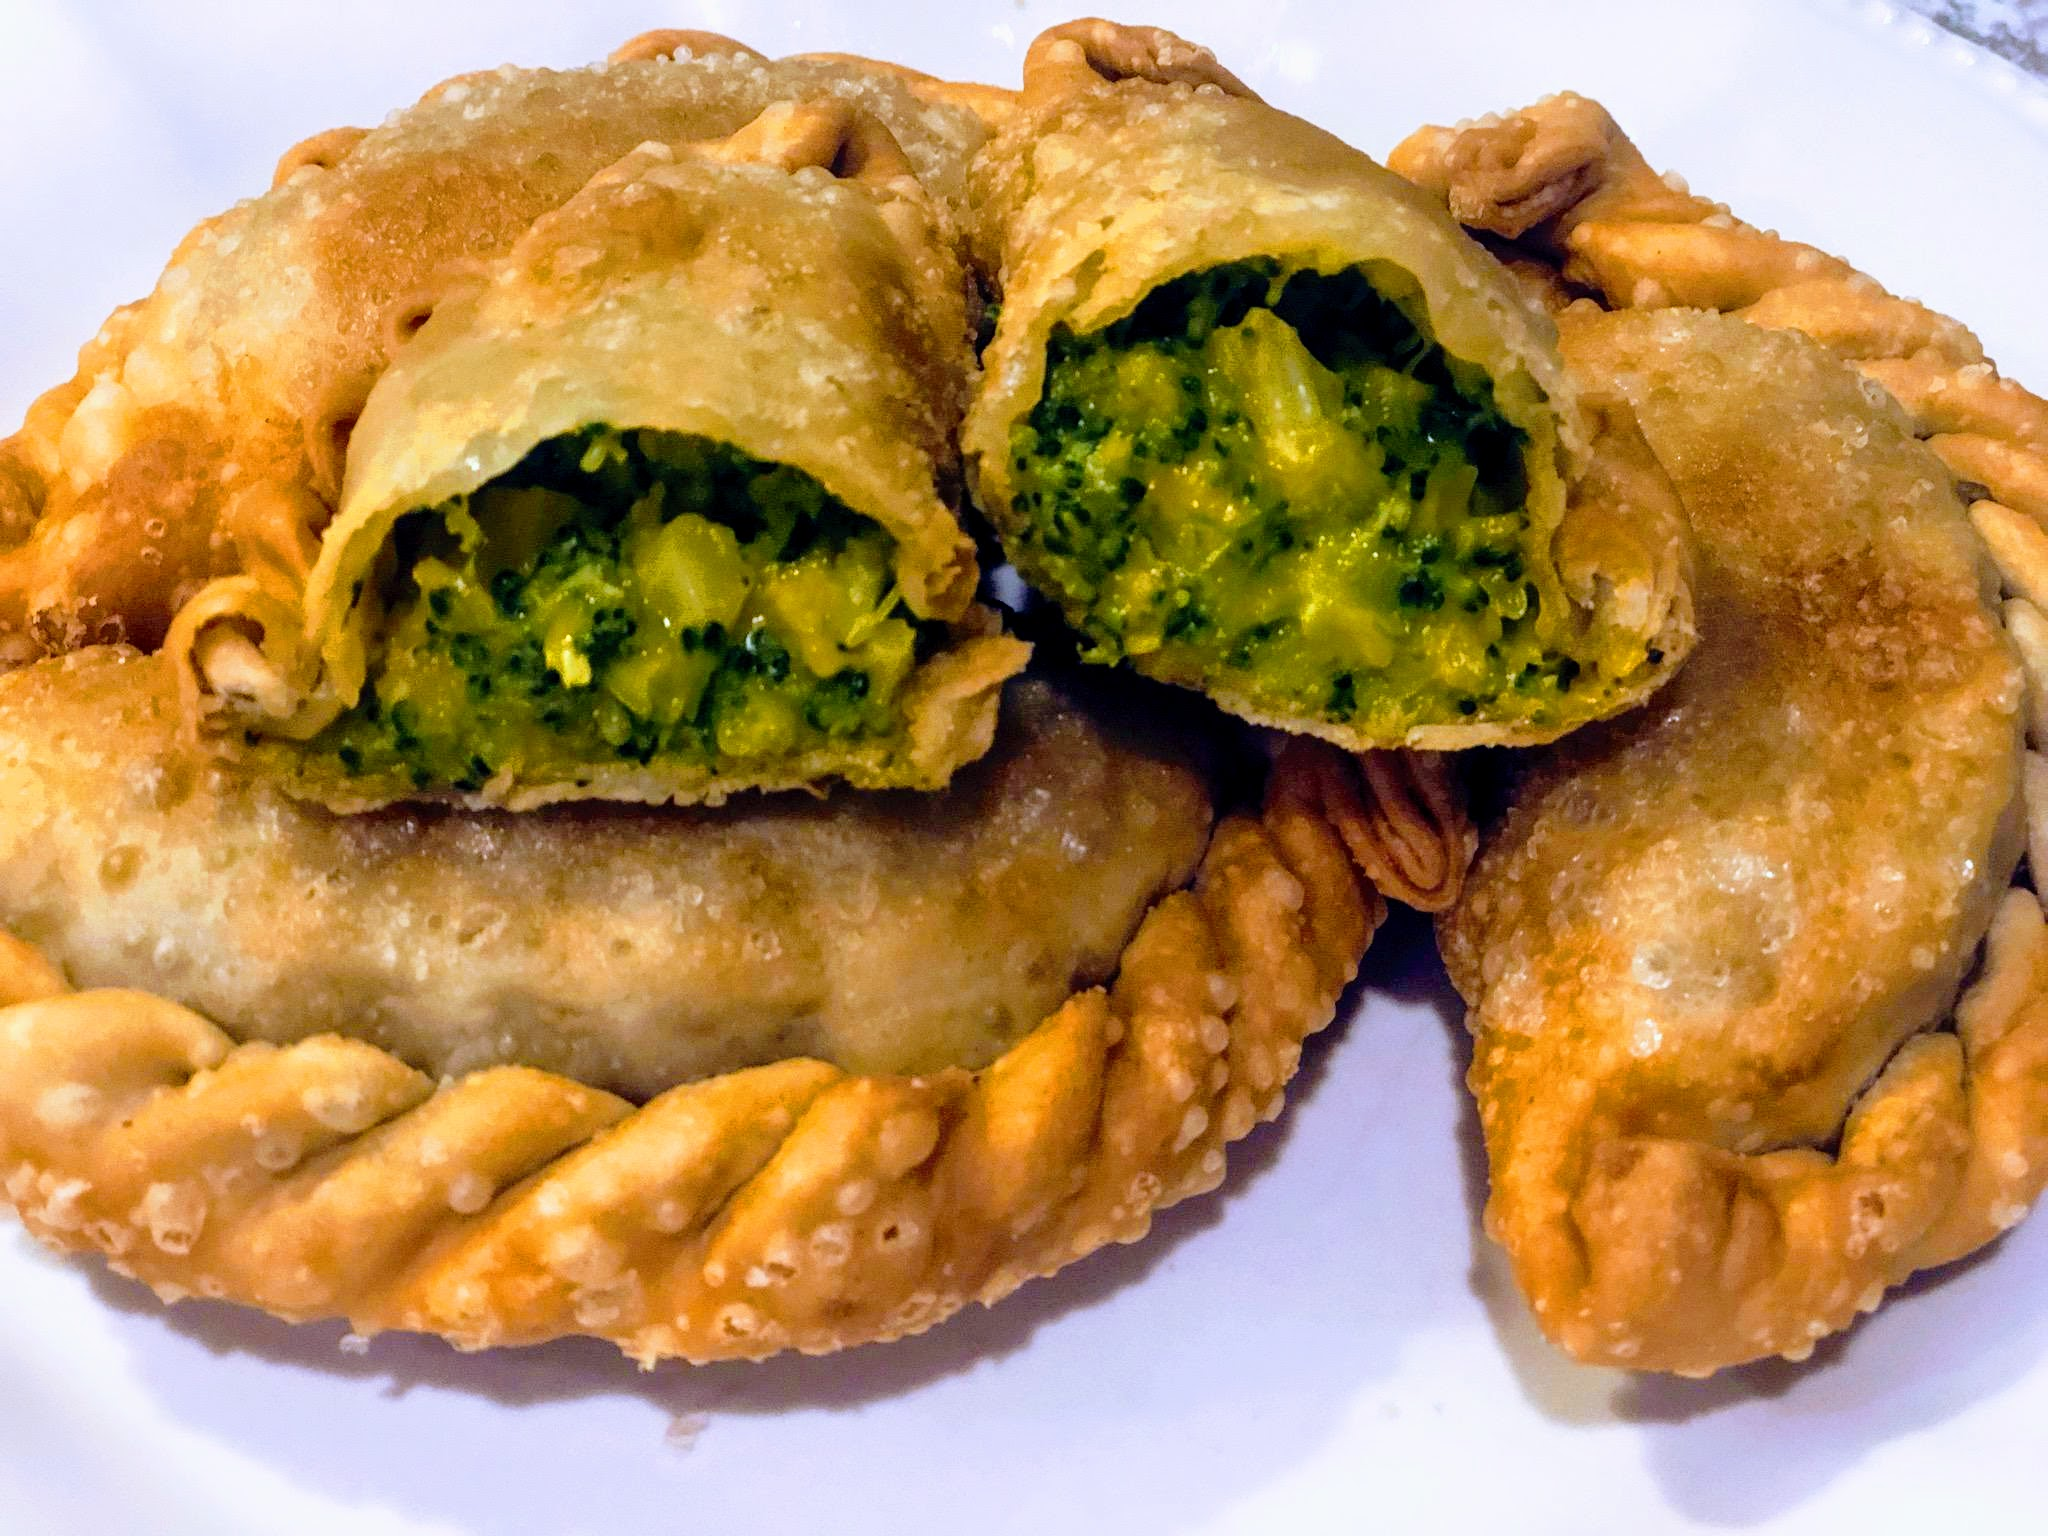 Broccoli and cheese empanada